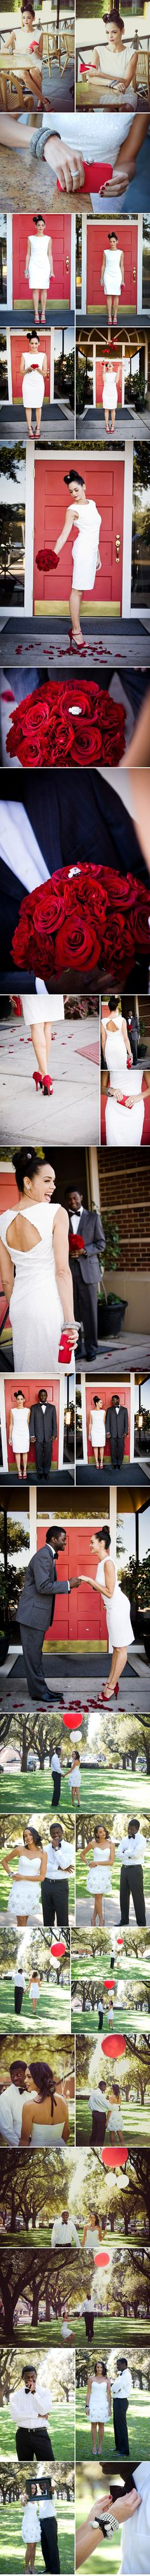 The best wedding colour red images on pinterest red wedding